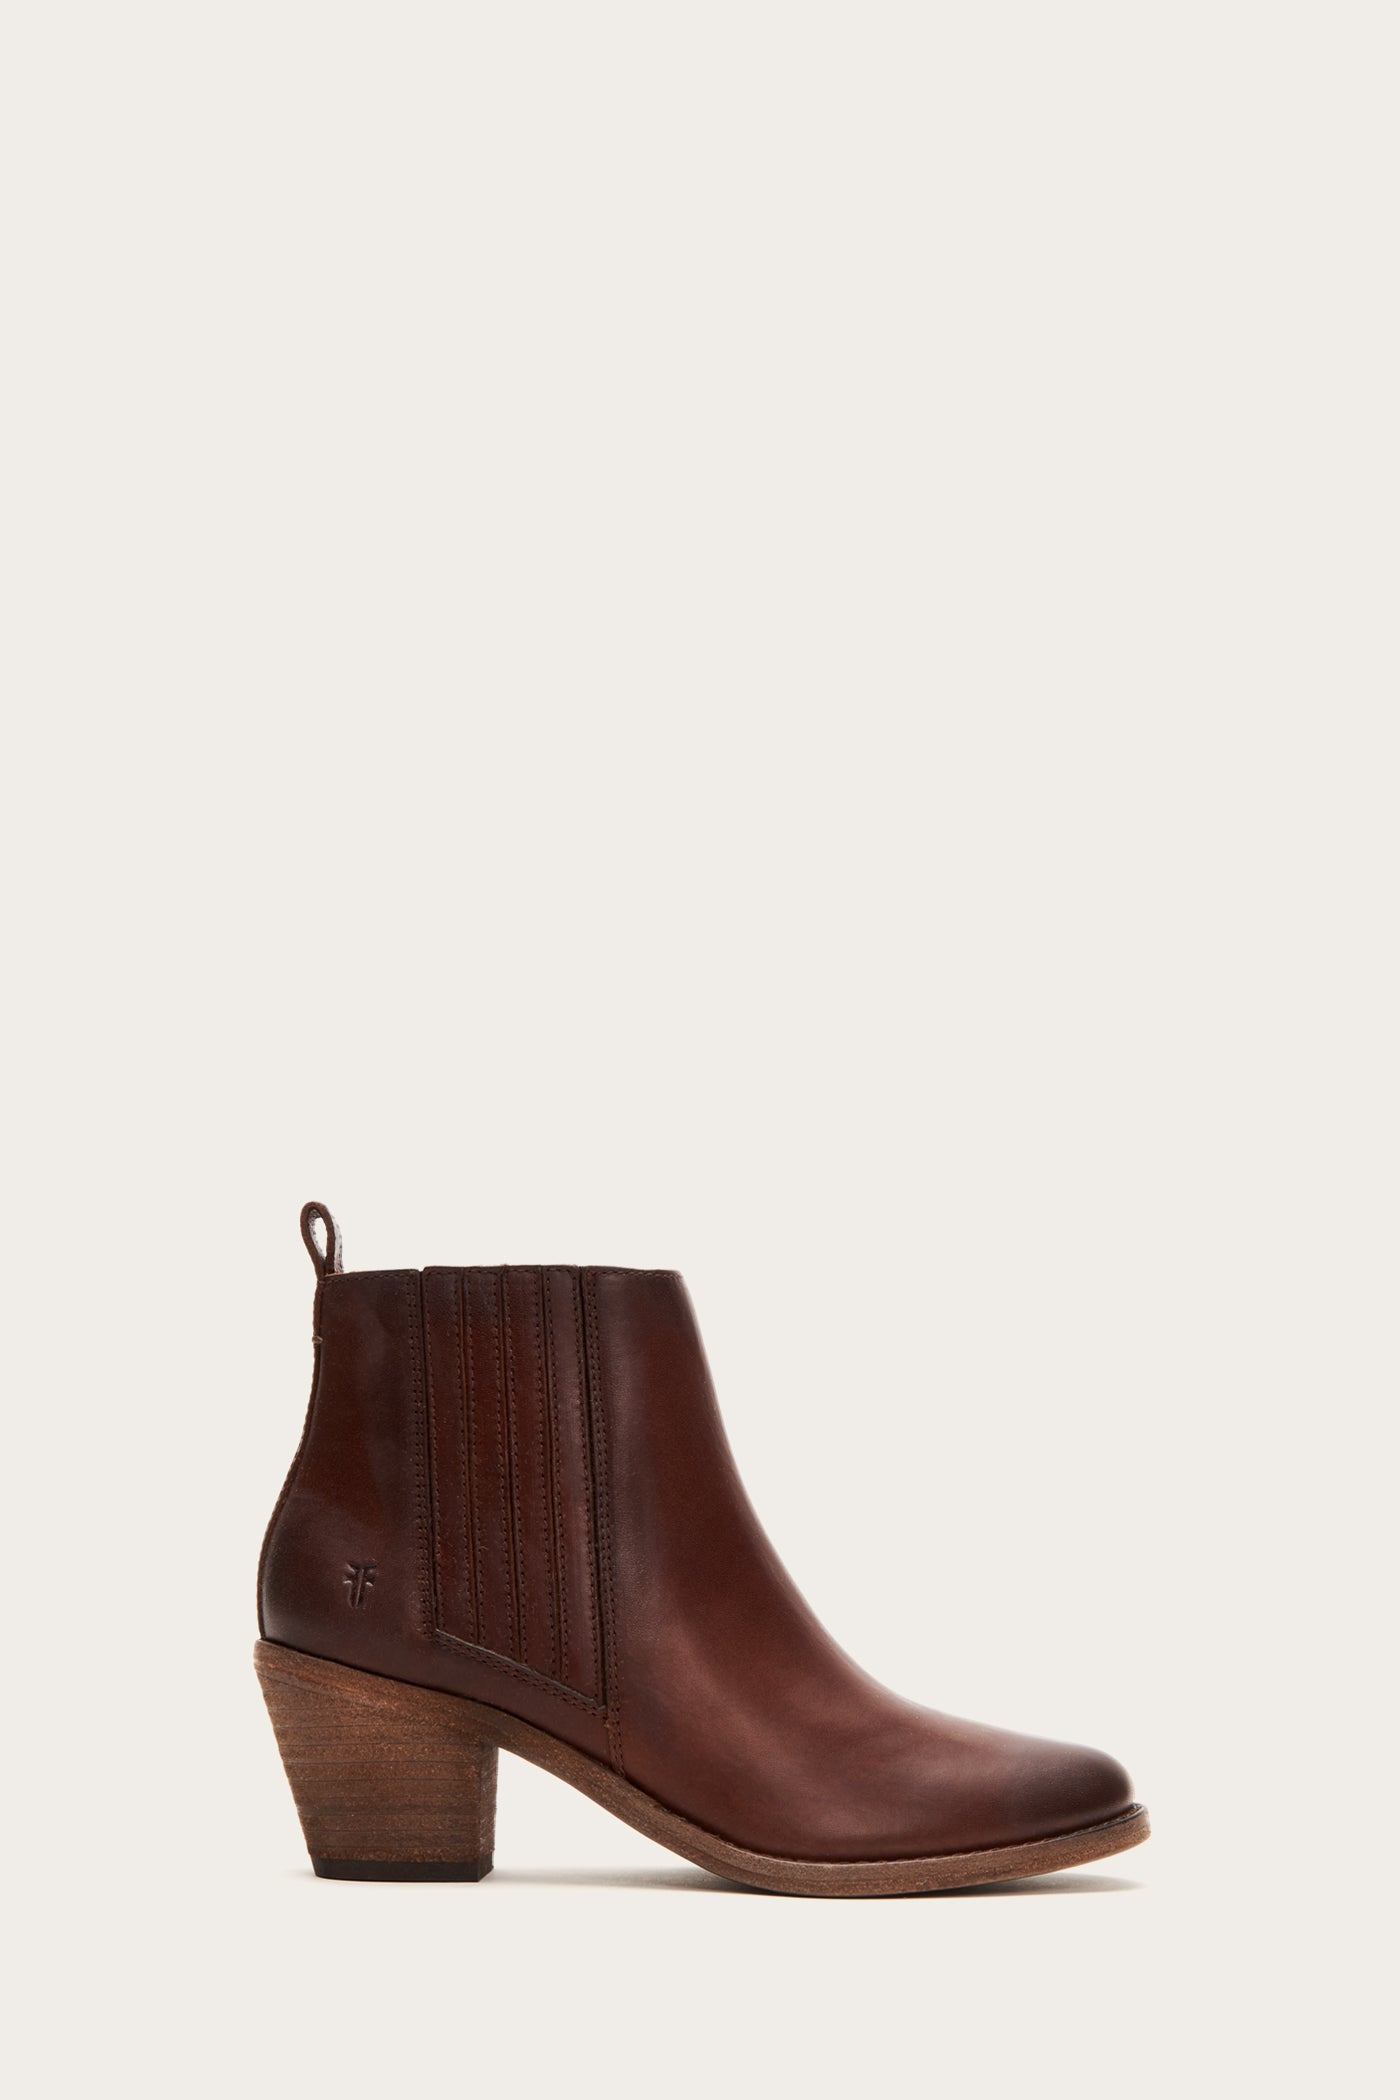 0e260d73a9b Leather Boots, Shoes & Bags | Clothing | FRYE Since 1863